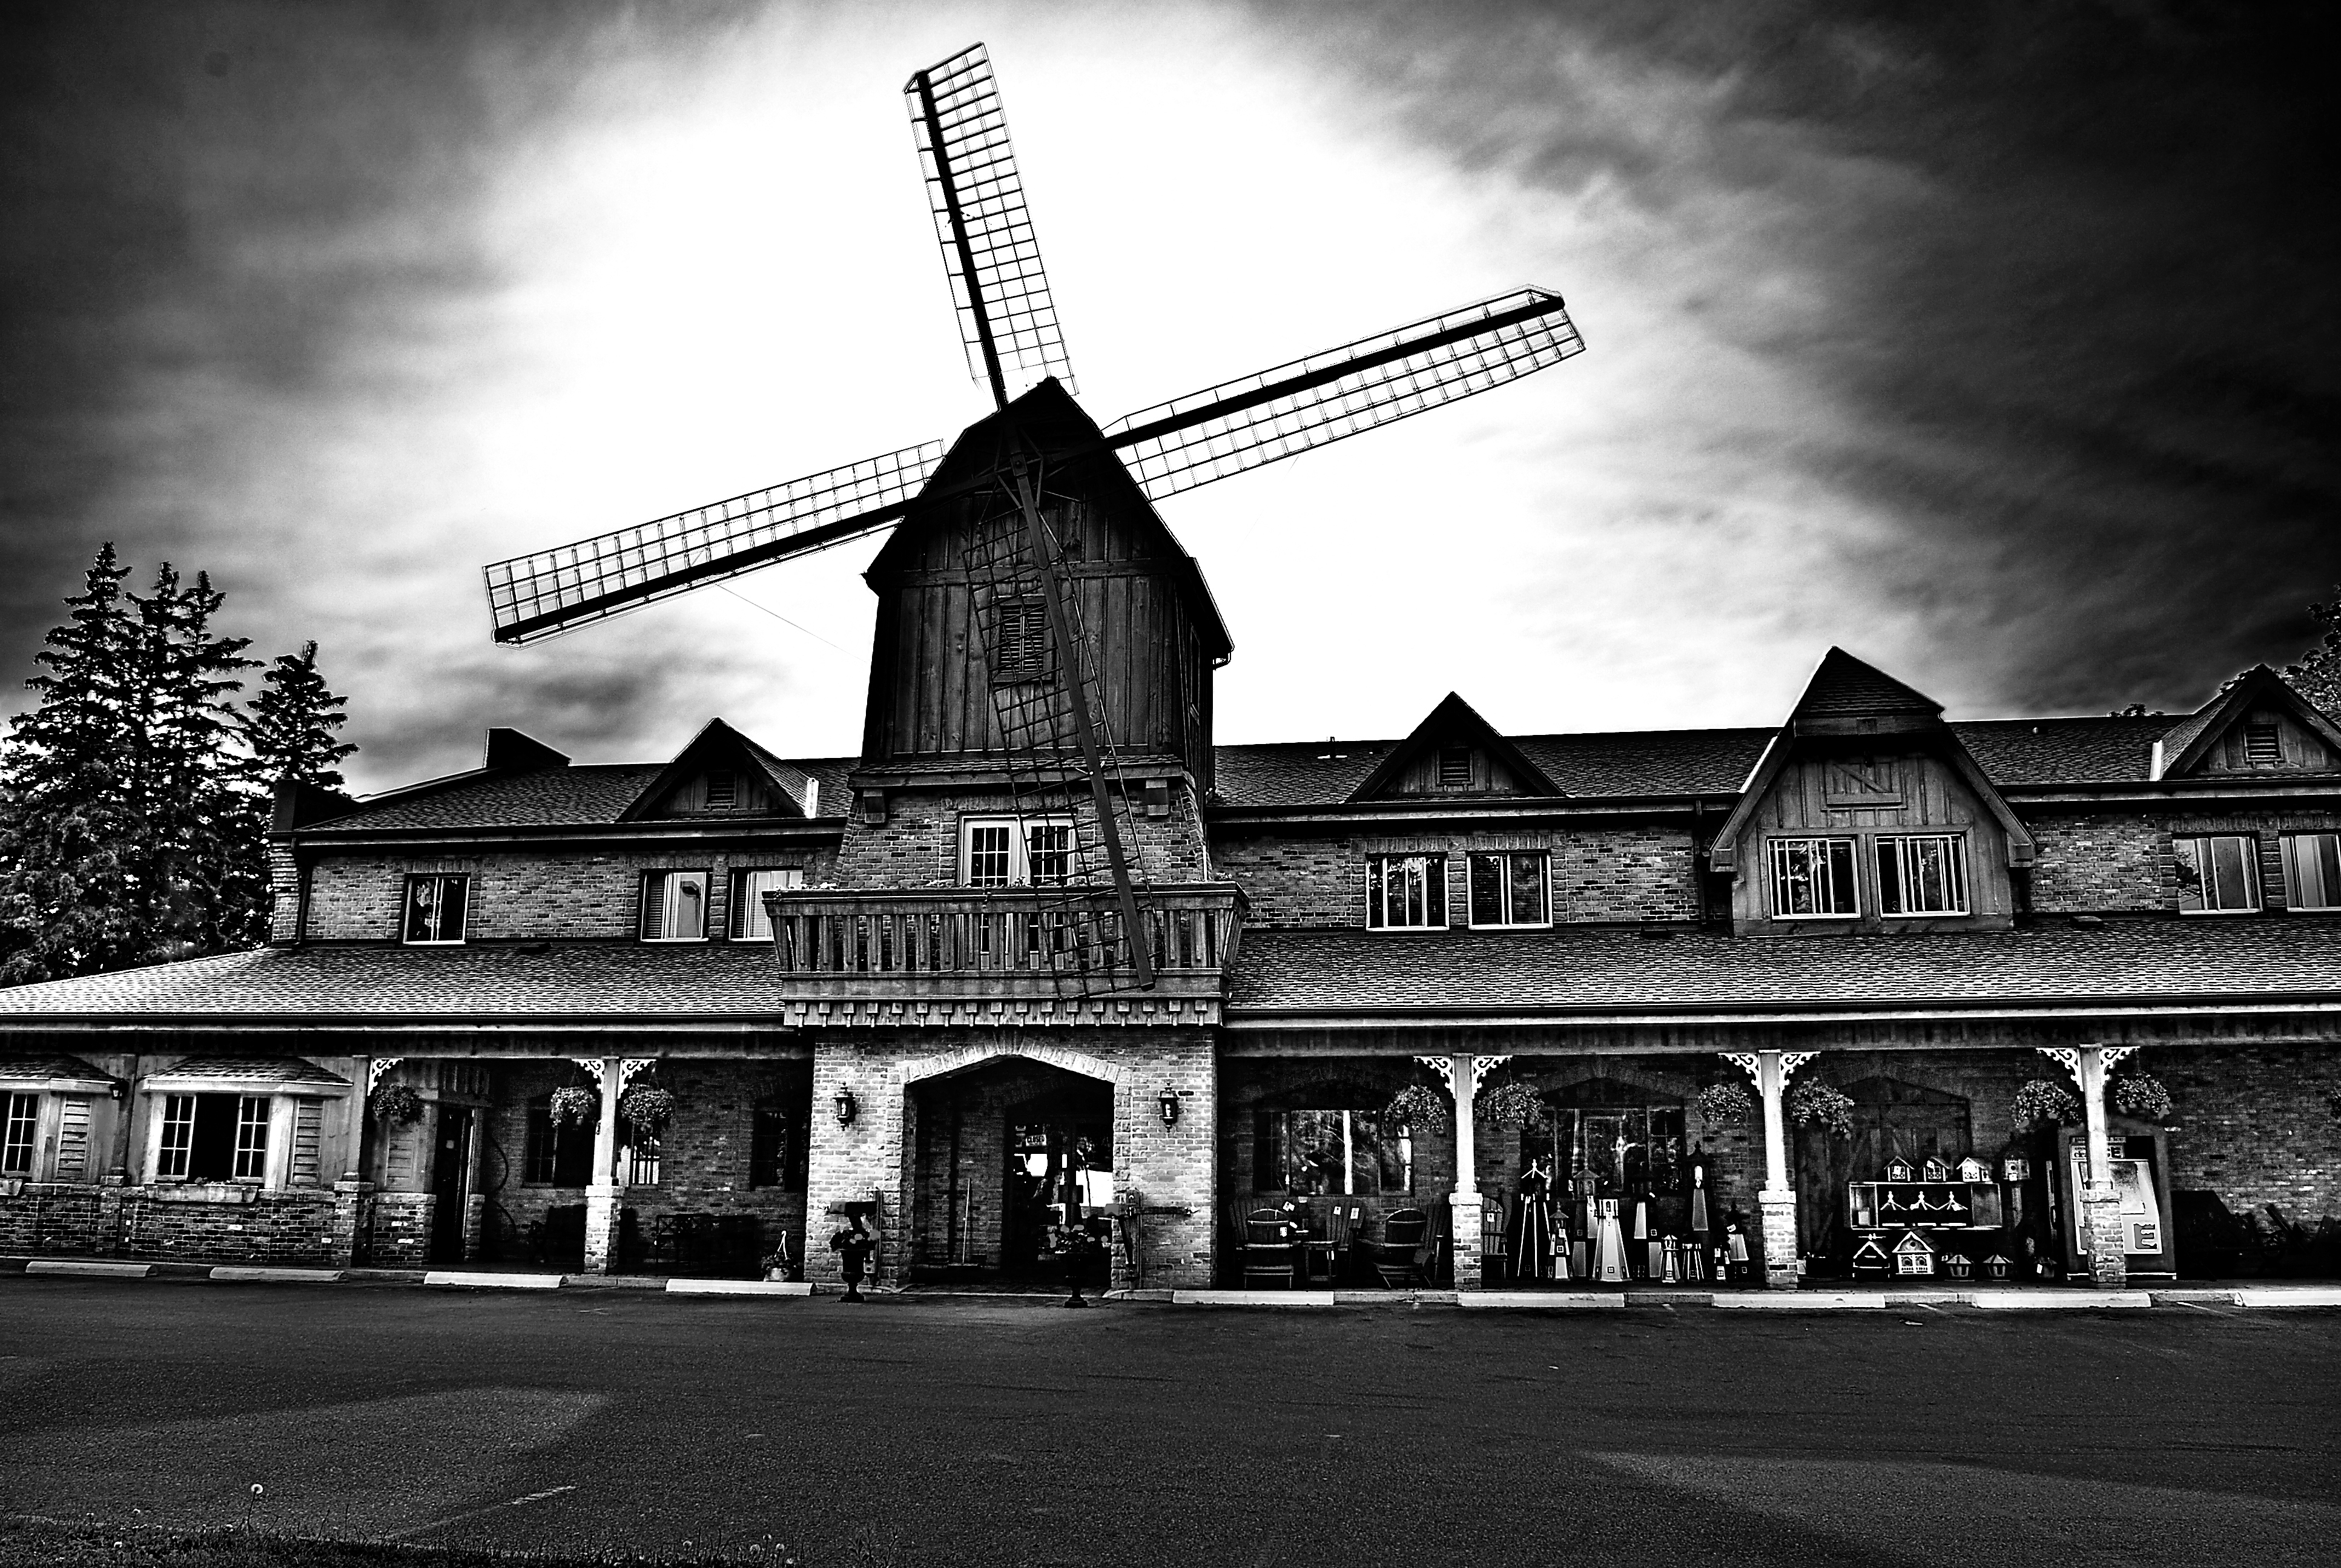 Mt. Pleasant windmill, Bakery, Black, Black&white, Building, HQ Photo